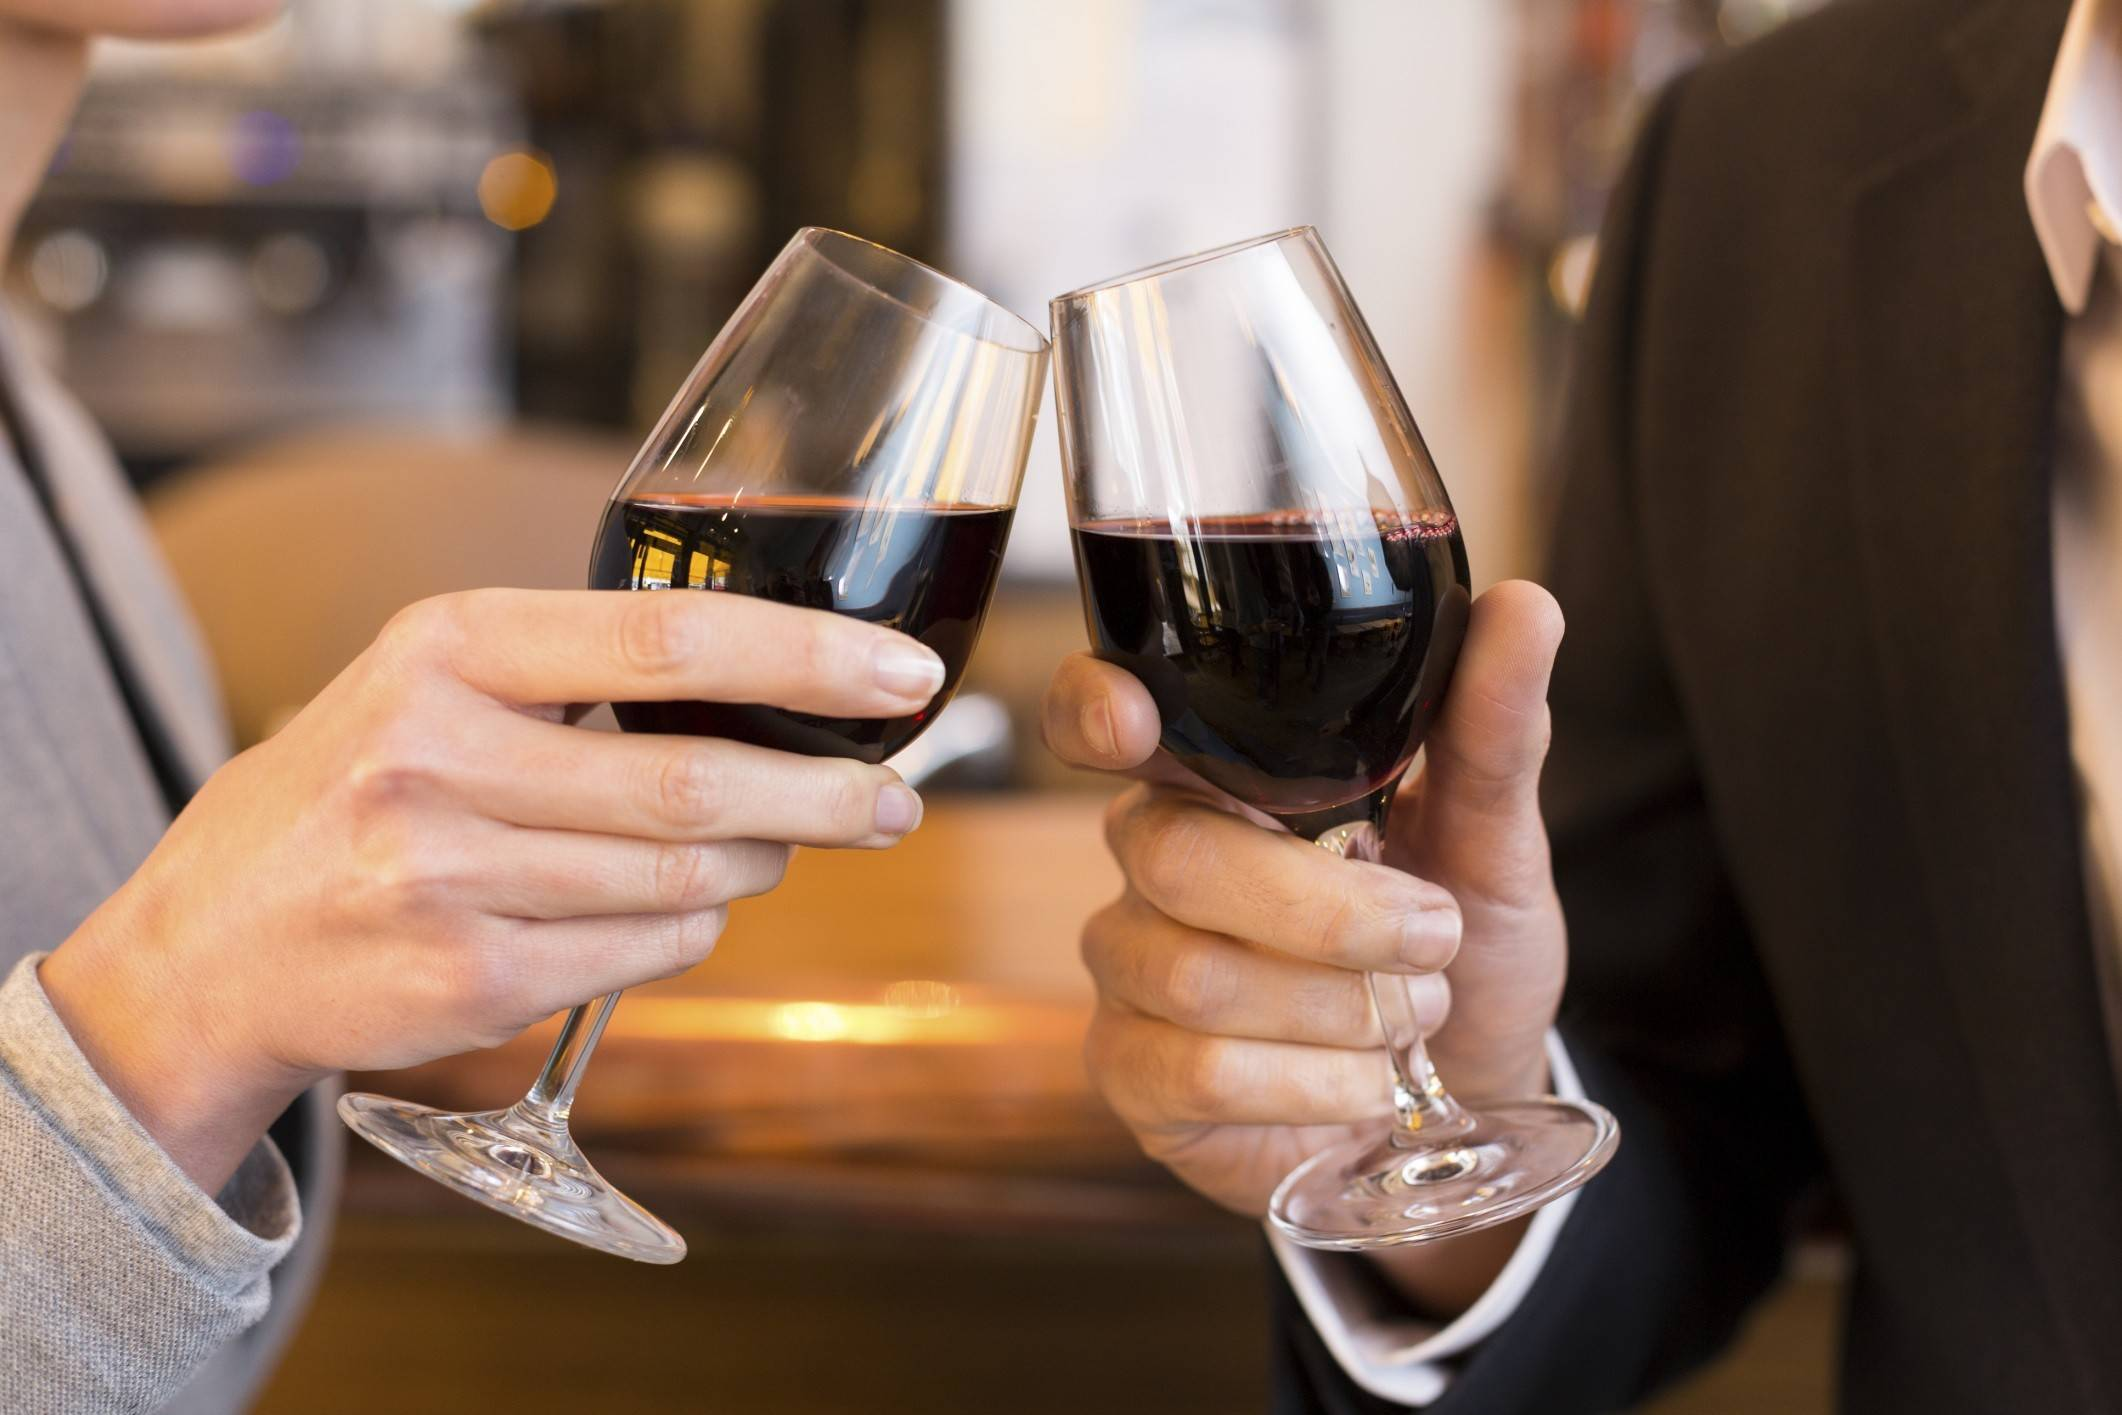 If you drink three glasses of wine, you may consume an extra 6,300 calories in the following 24 hours, a study shows.